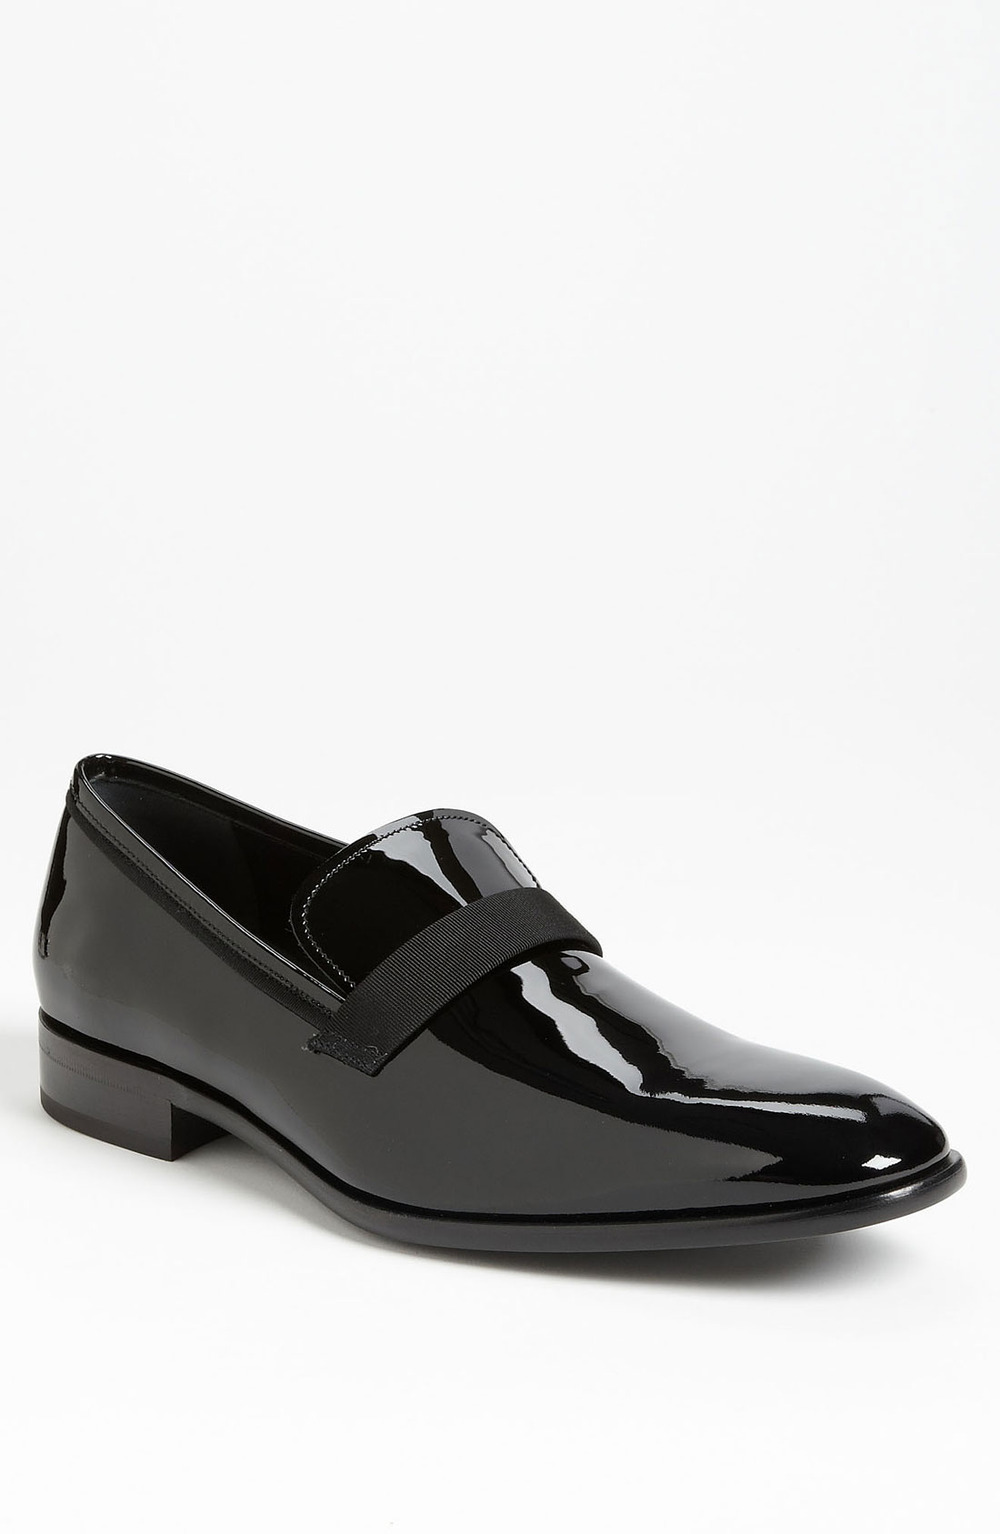 salvatore ferragamo slip on